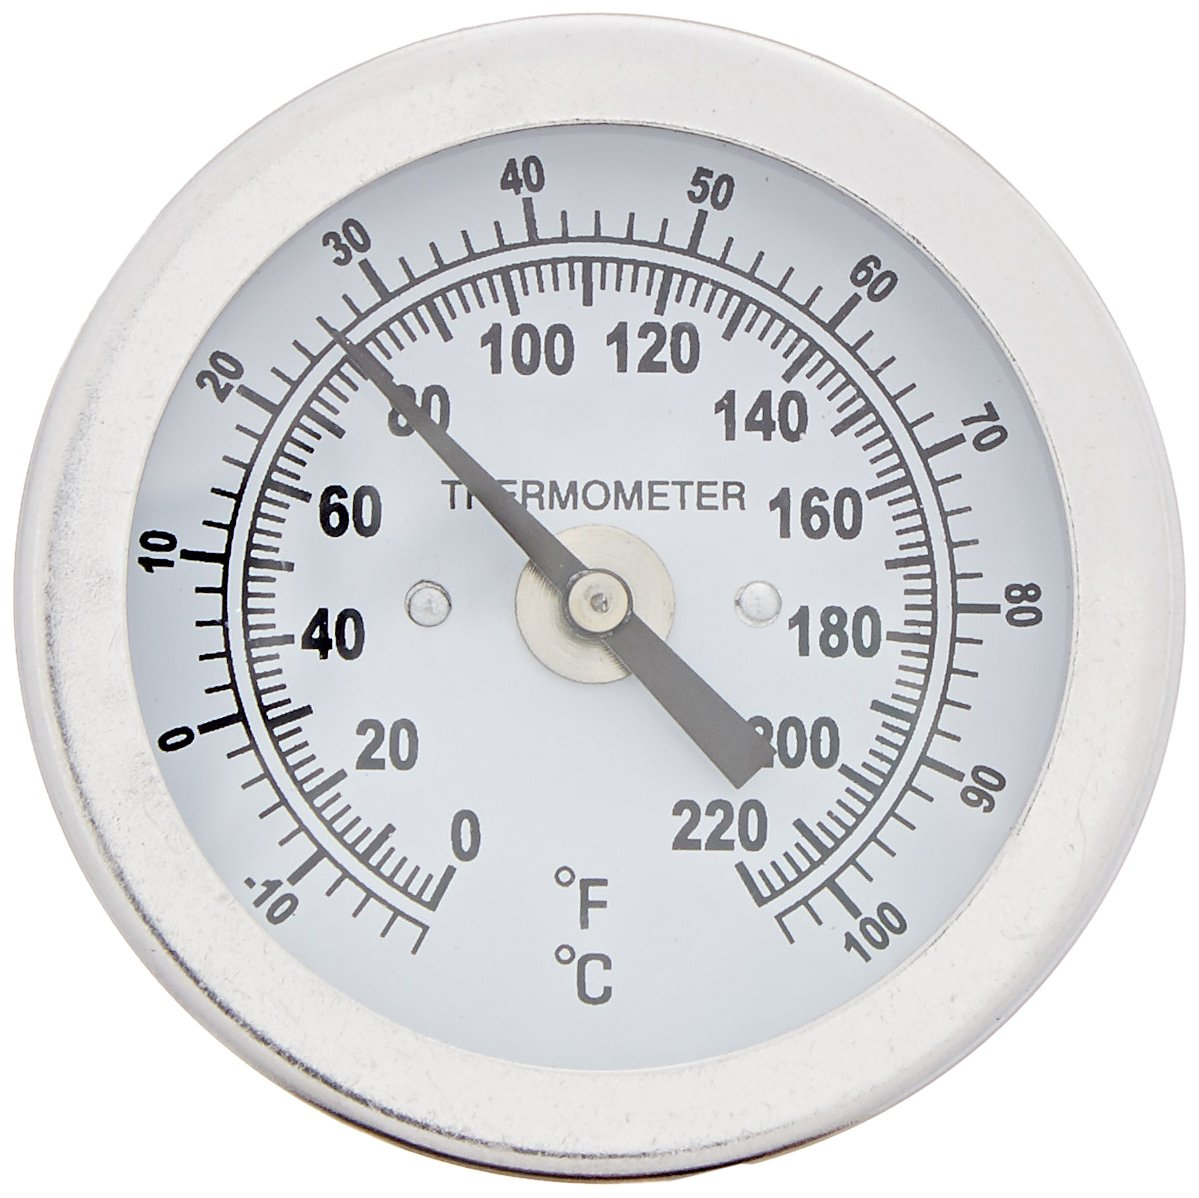 "PIC Gauge B2B2-HH 2"" Dial Size, 0/220°F and -18/104°C, 2'' Stem Length, Back Angle Connection, Stainless Steel Case, 316 Stainless Steel Stem Bimetal Thermometer"